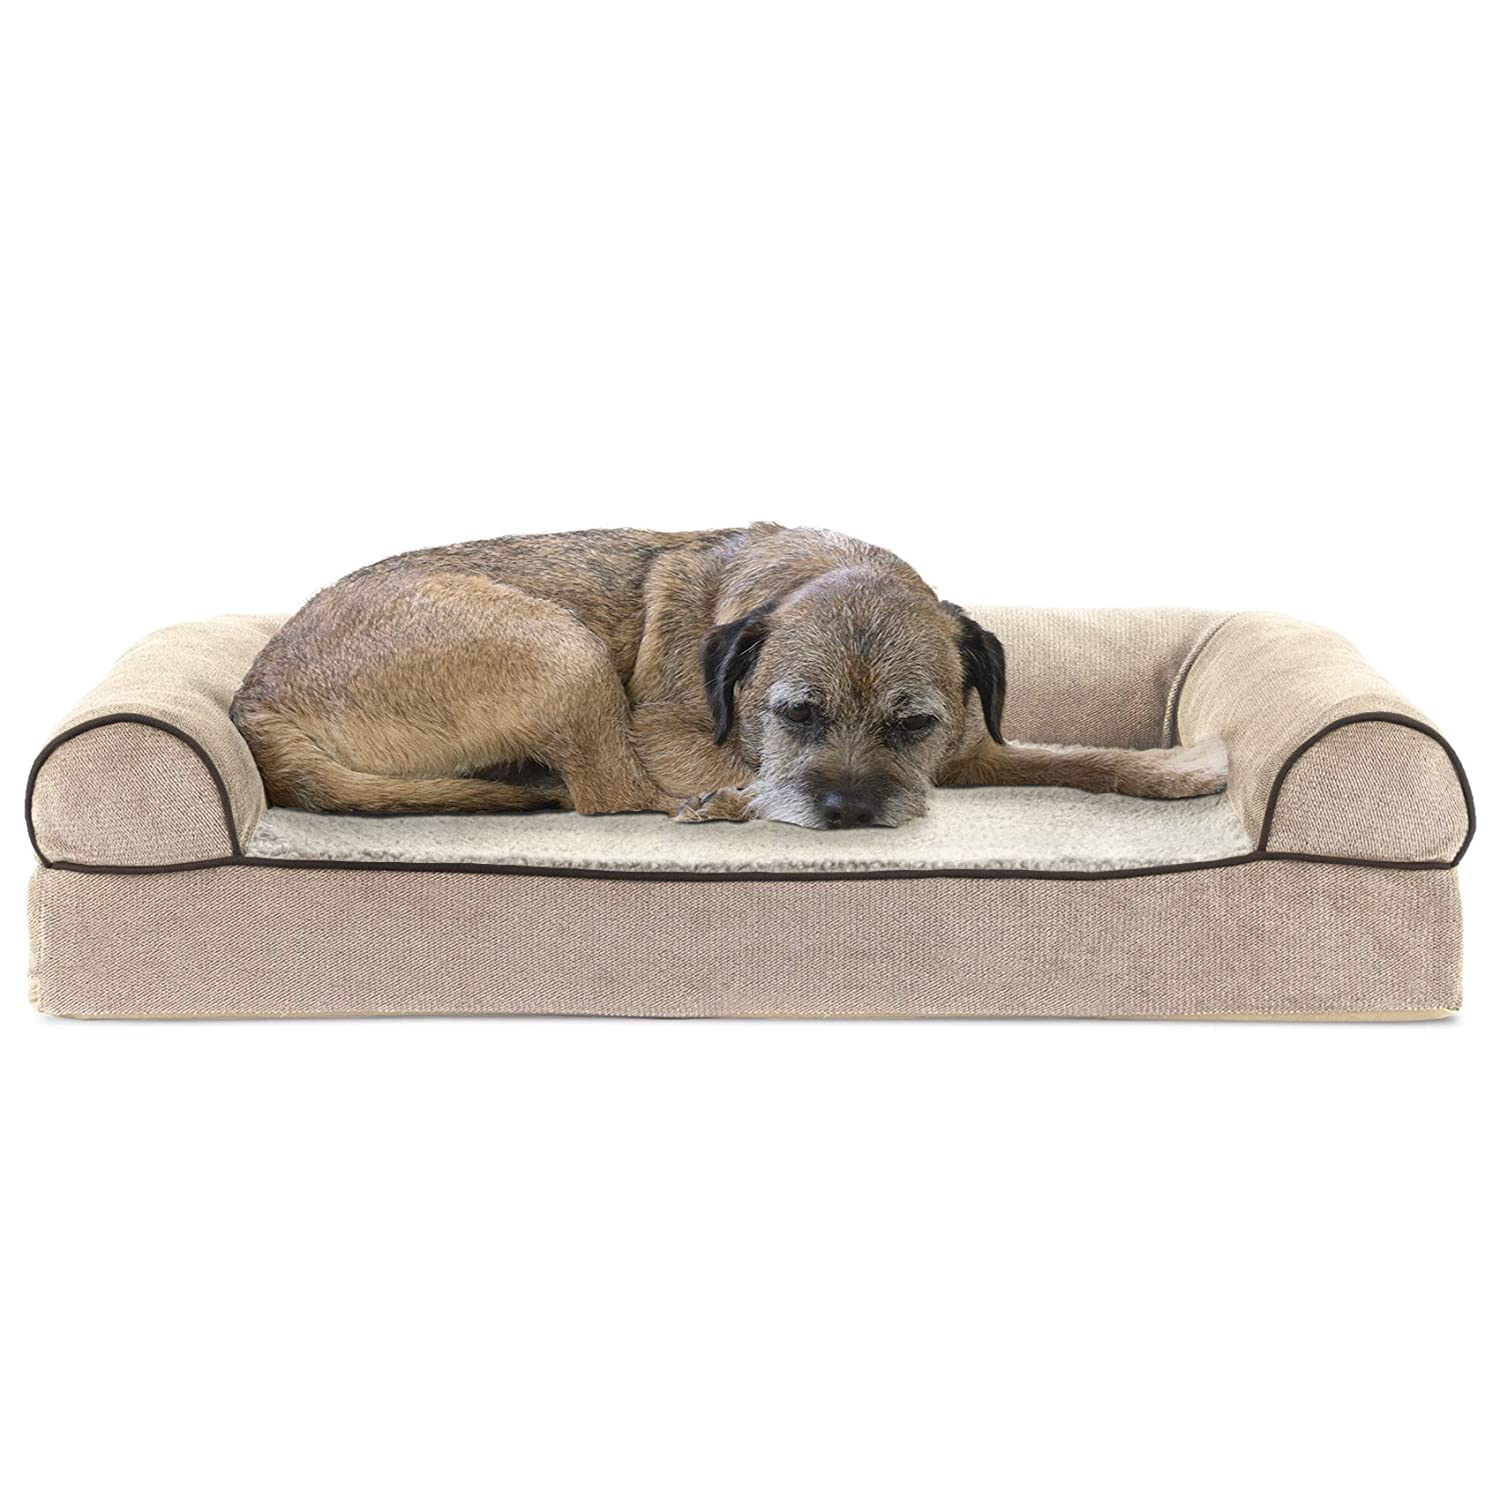 FurHaven Pet Dog Bed   Cooling Gel Memory Foam Orthopedic Faux Fleece & Chenille Soft Woven Sofa-Style Couch Pet Bed for Dogs & Cats, Cream, Medium